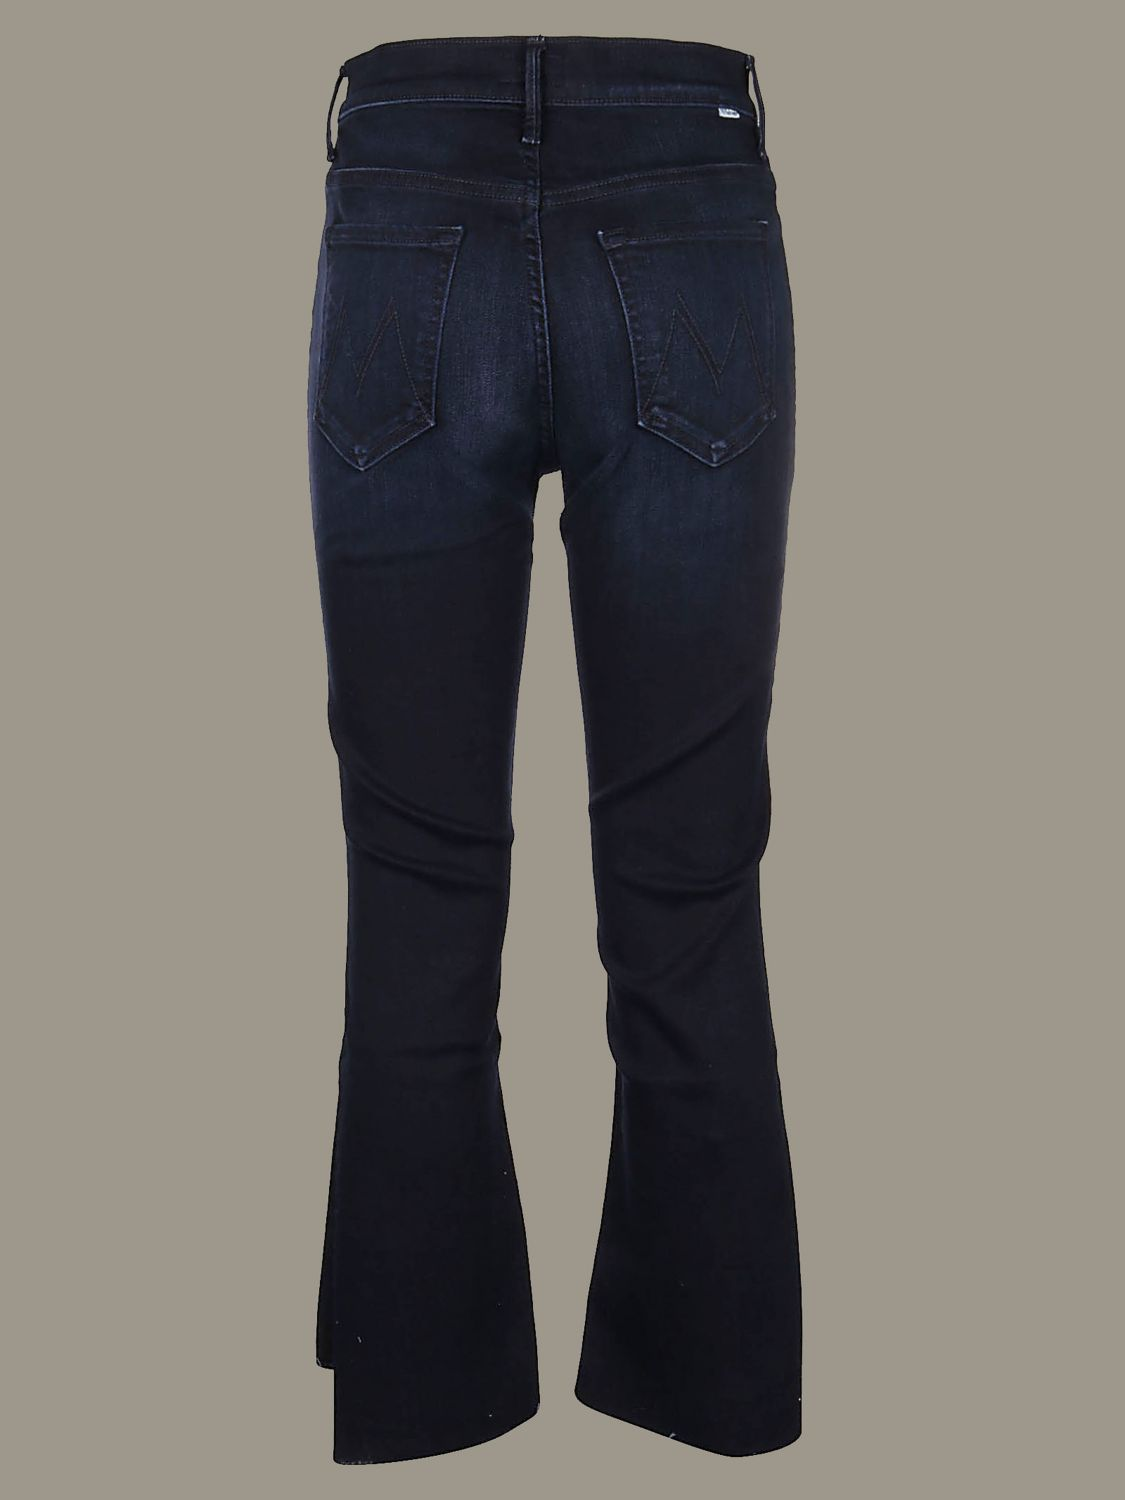 Jeans mujer Mother denim 2